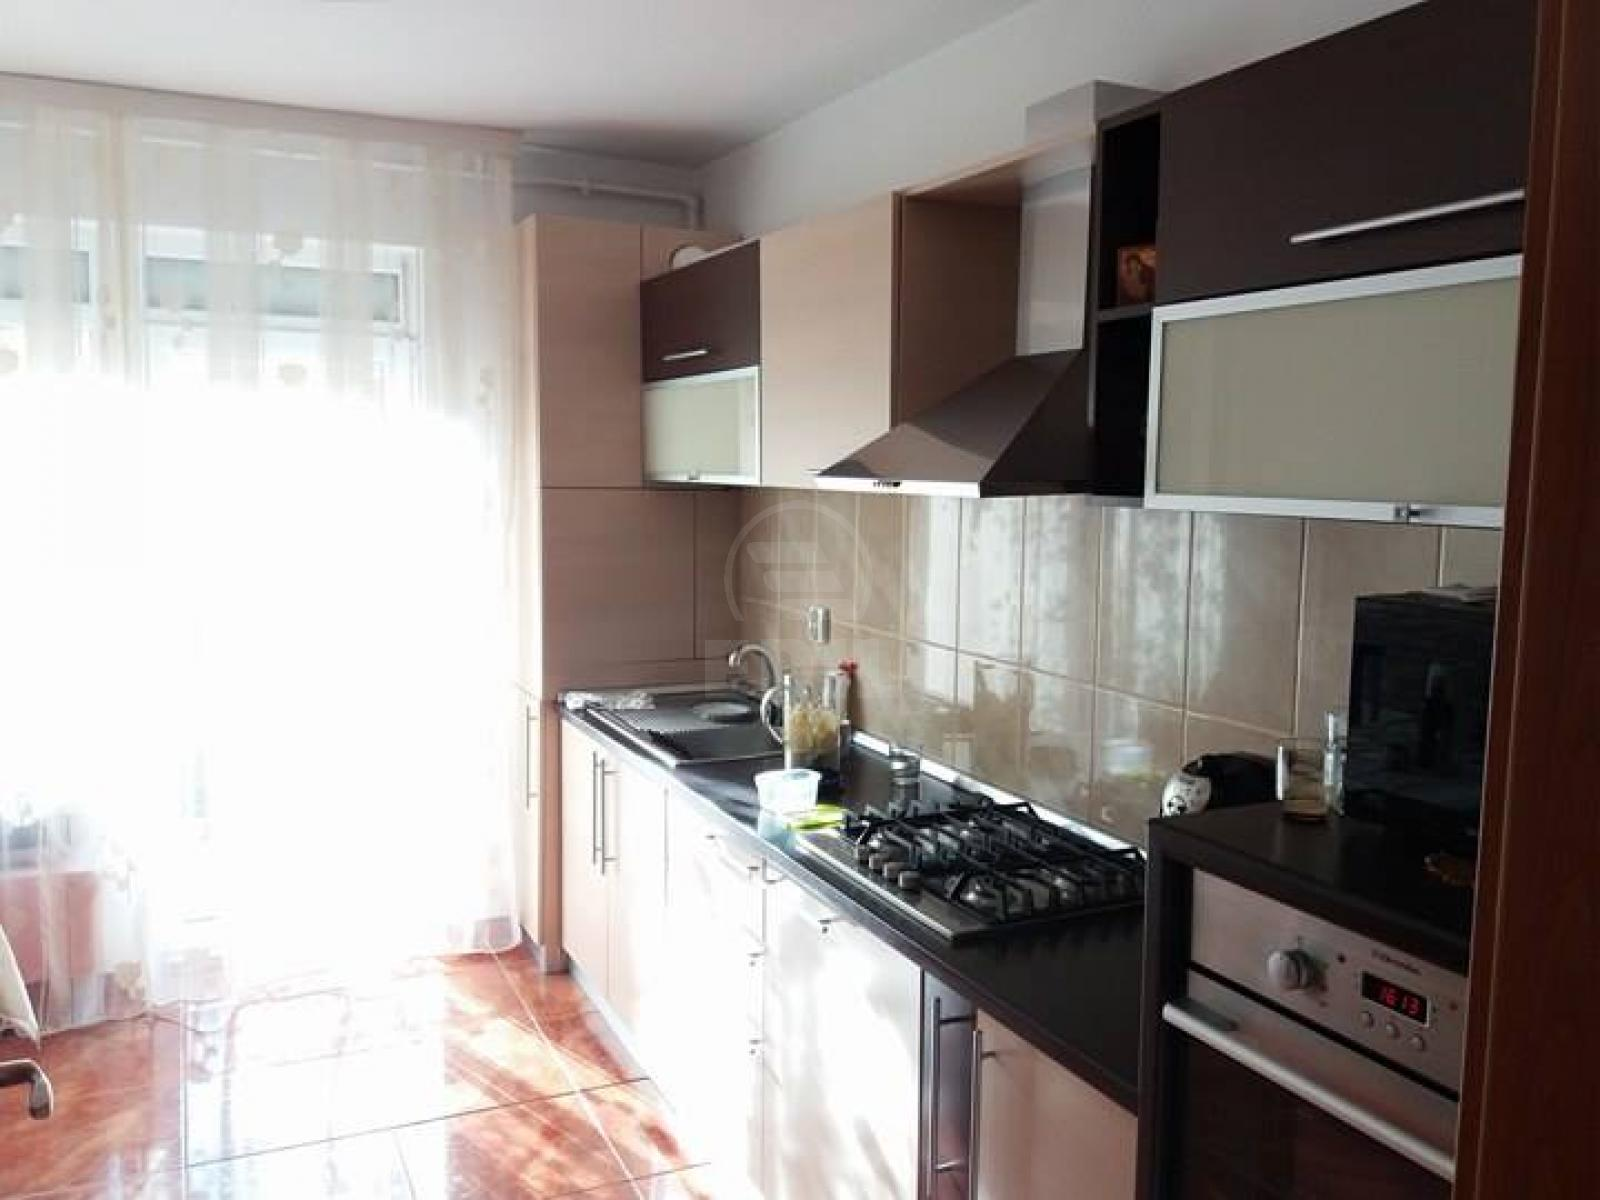 Apartment for sale 3 rooms, APCJ273629-5